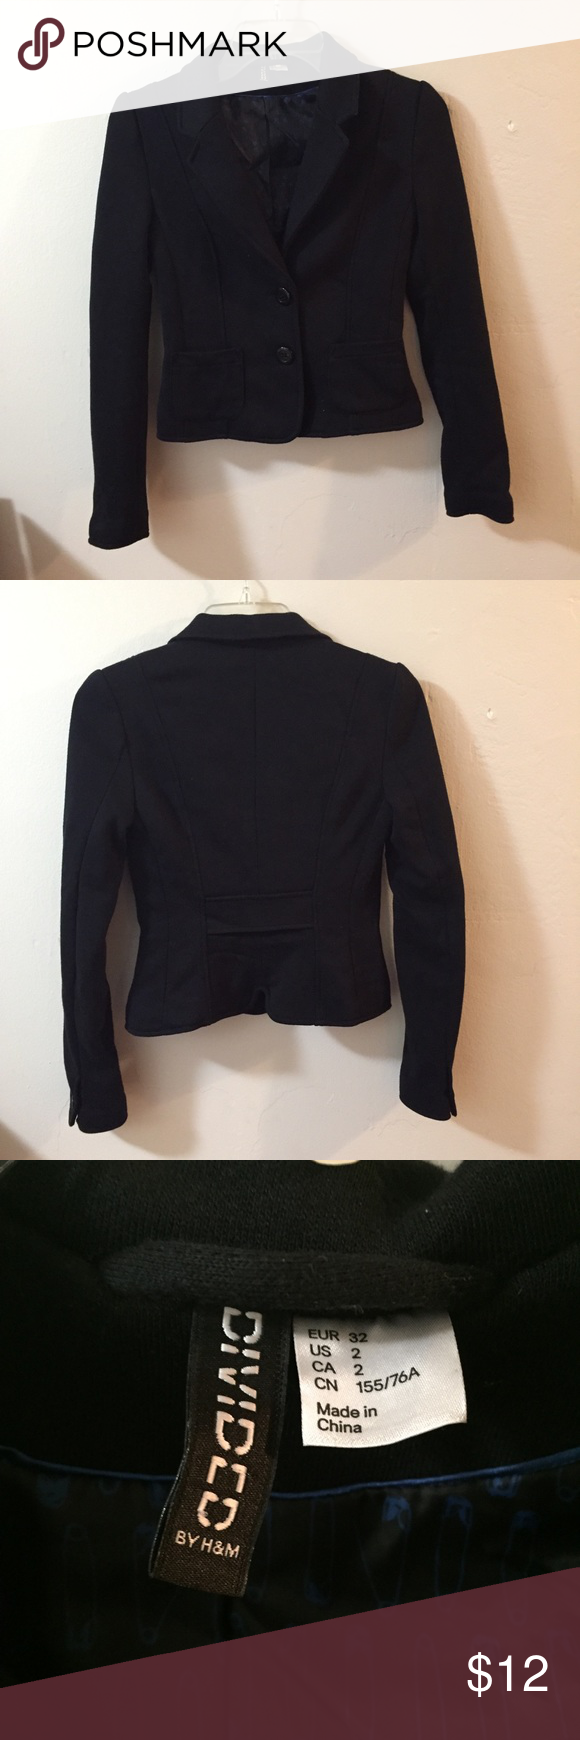 Short Blazer Short blazer by H&M is great for the professional looking for different blazer lengths! This is a short blazer and fitted so it is stylish and great with skirts! 65% cotton 35% polyester. 20' Top to bottom. Excellent condition H&M Jackets & Coats Blazers